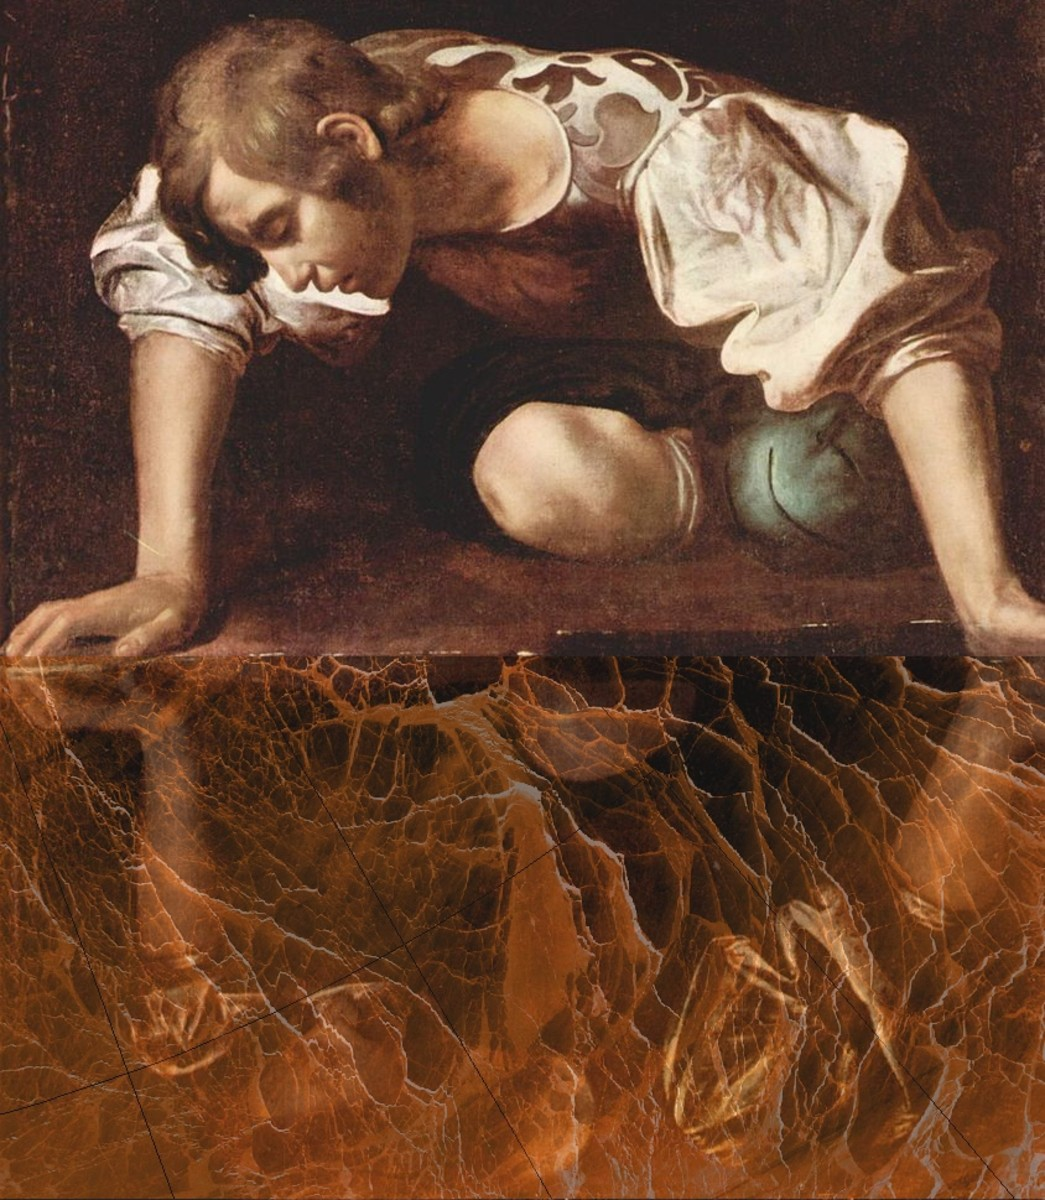 """""""Narcissus"""" by Caravaggio (1595), modified by """"A-Team.""""  The reflection is overlaid with the February 2012 sea ice cracks, as imaged from orbit.  Narcissus has broken his mirror...  Image courtesy A-Team."""